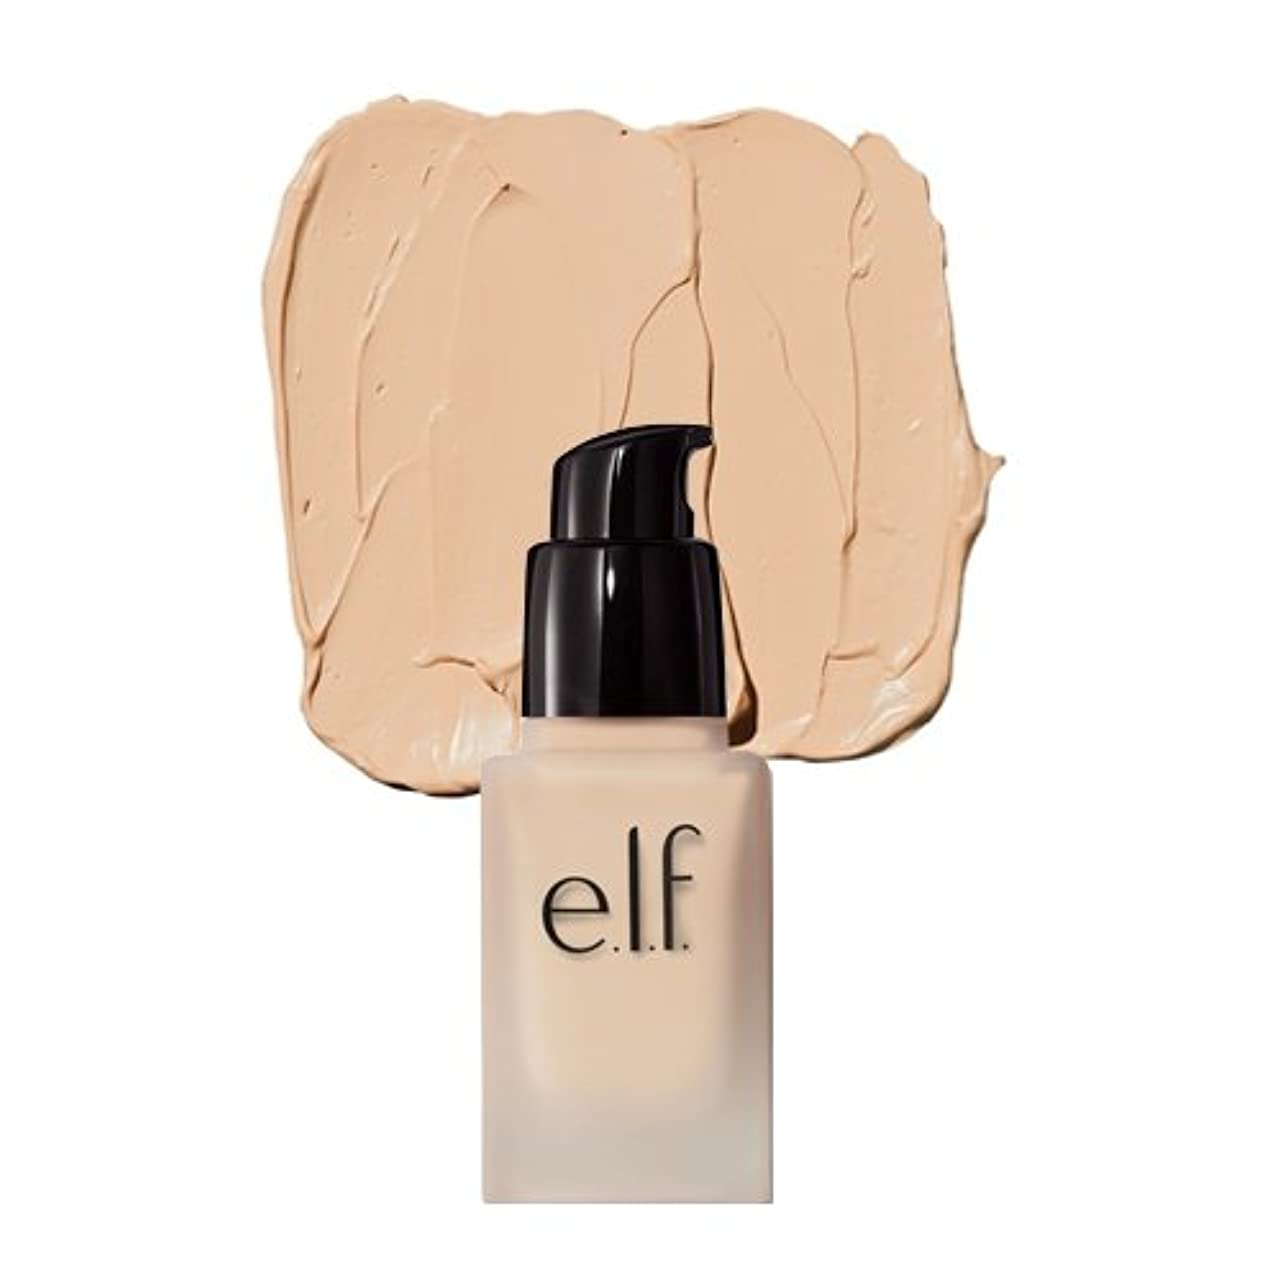 出撃者爆発物スノーケル(6 Pack) e.l.f. Oil Free Flawless Finish Foundation - Light Ivory (並行輸入品)